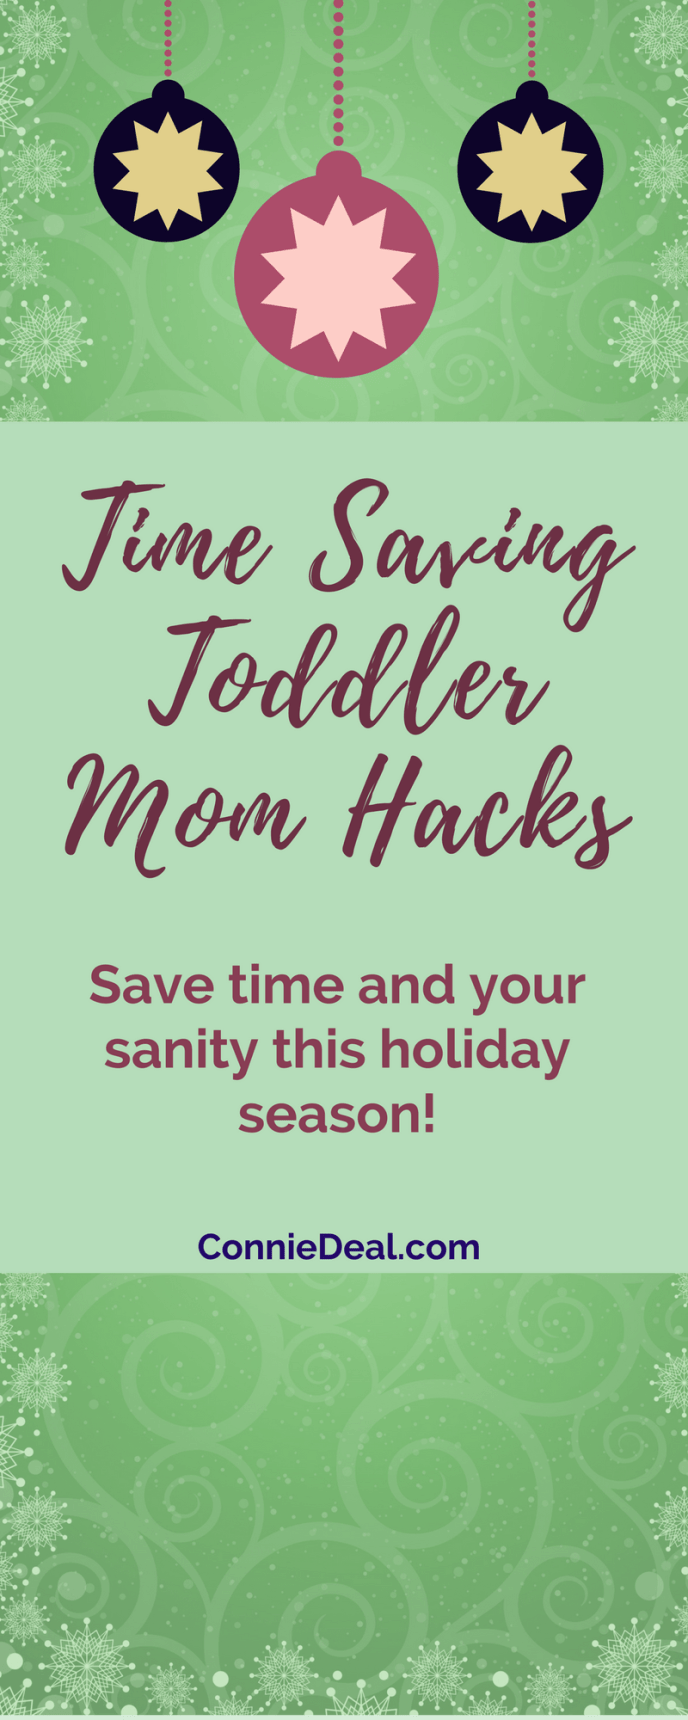 You spent a lot of time and effort getting your toddler or preschooler in a routine. Don't let that fall apart with all the festivities this holiday season! Learn how to maintain your toddler's schedule and make your holiday season go more smoothly. #holidays #toddlerschedule #toddlermom #toddler